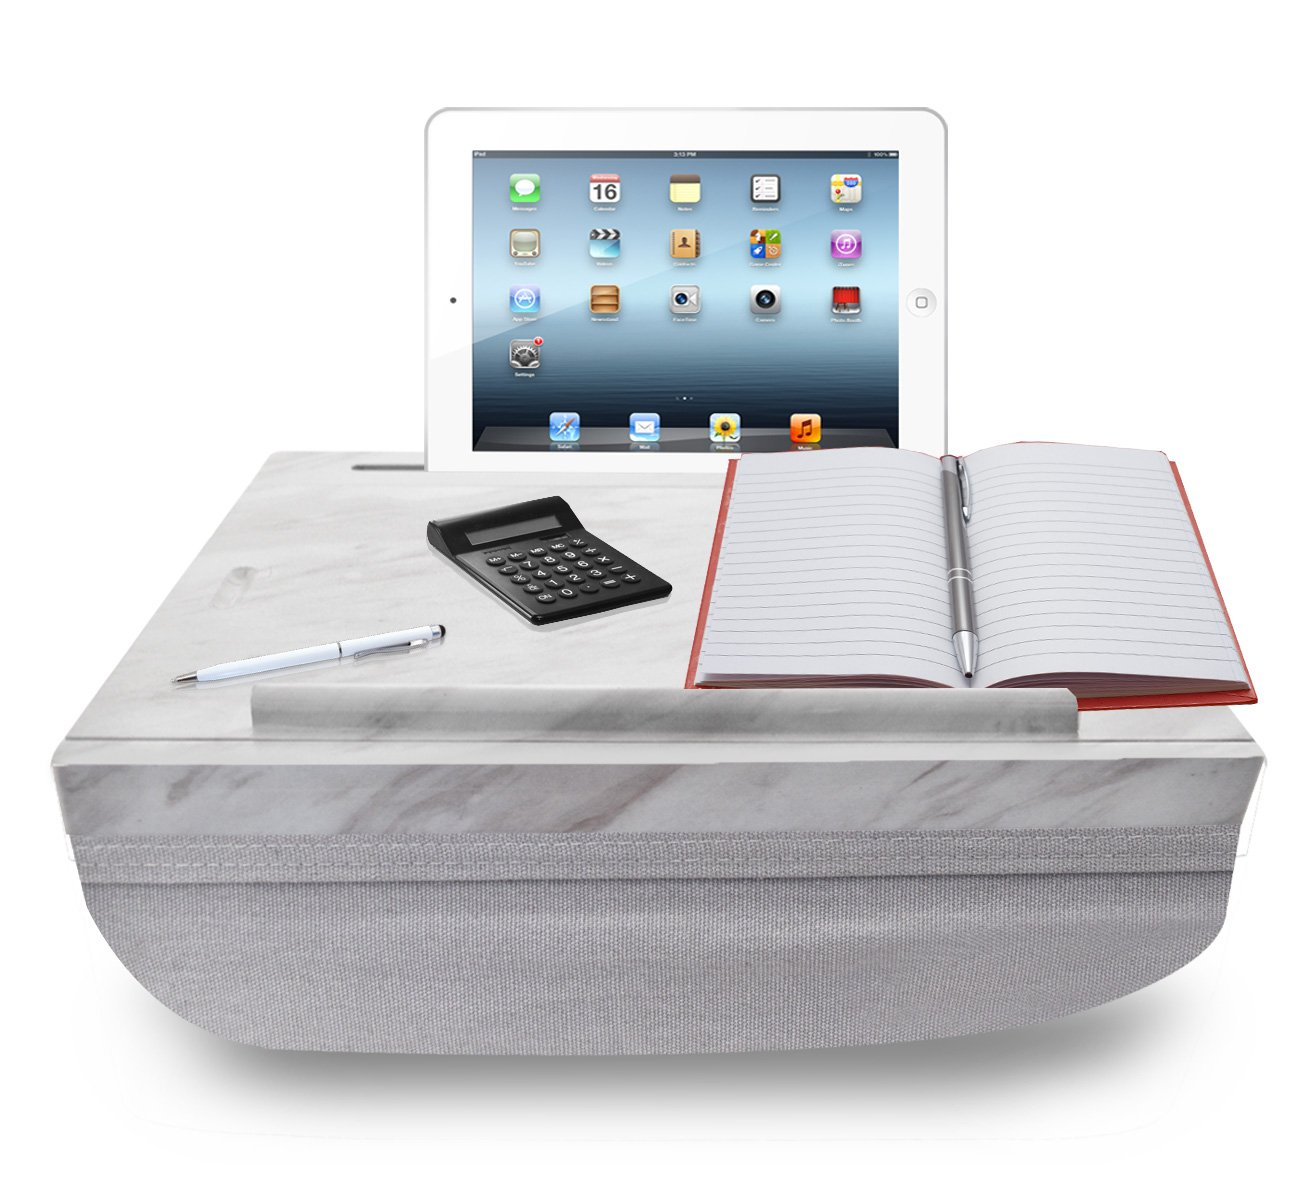 iCozy Portable Cushion Lap Desk With Storage - Marble / Charcoal Grey